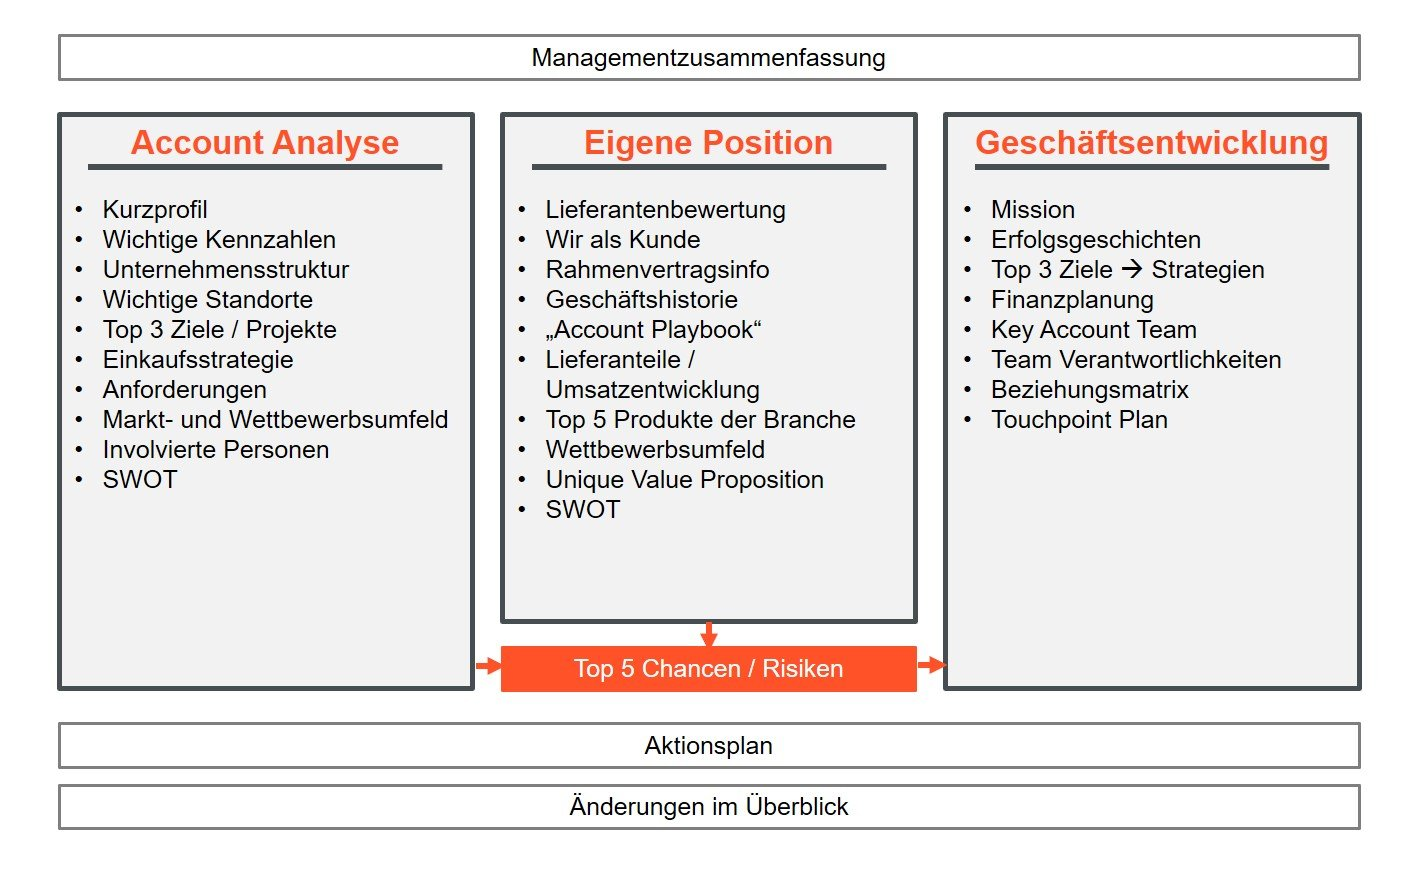 Key Account Plan Aufbau / Struktur